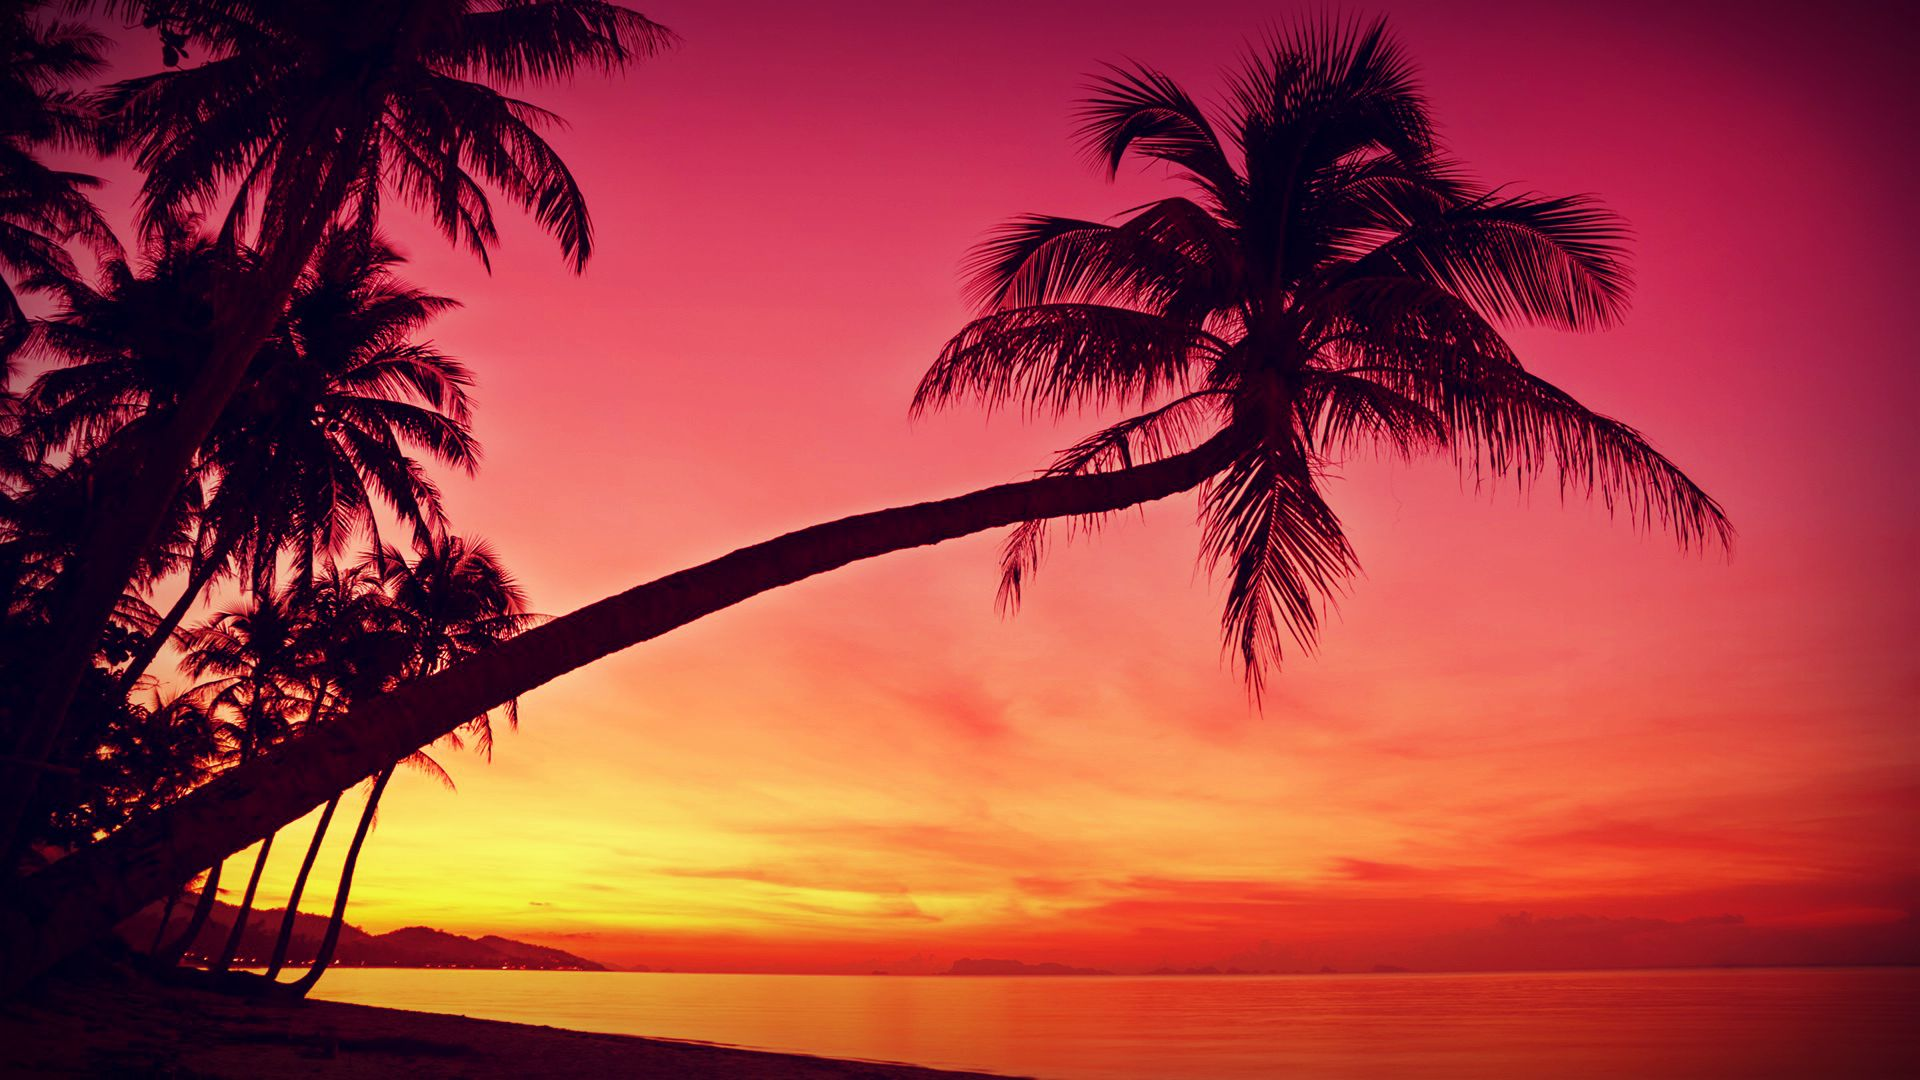 Beach Sunset With Palm Trees HD Wallpaper, Background Images